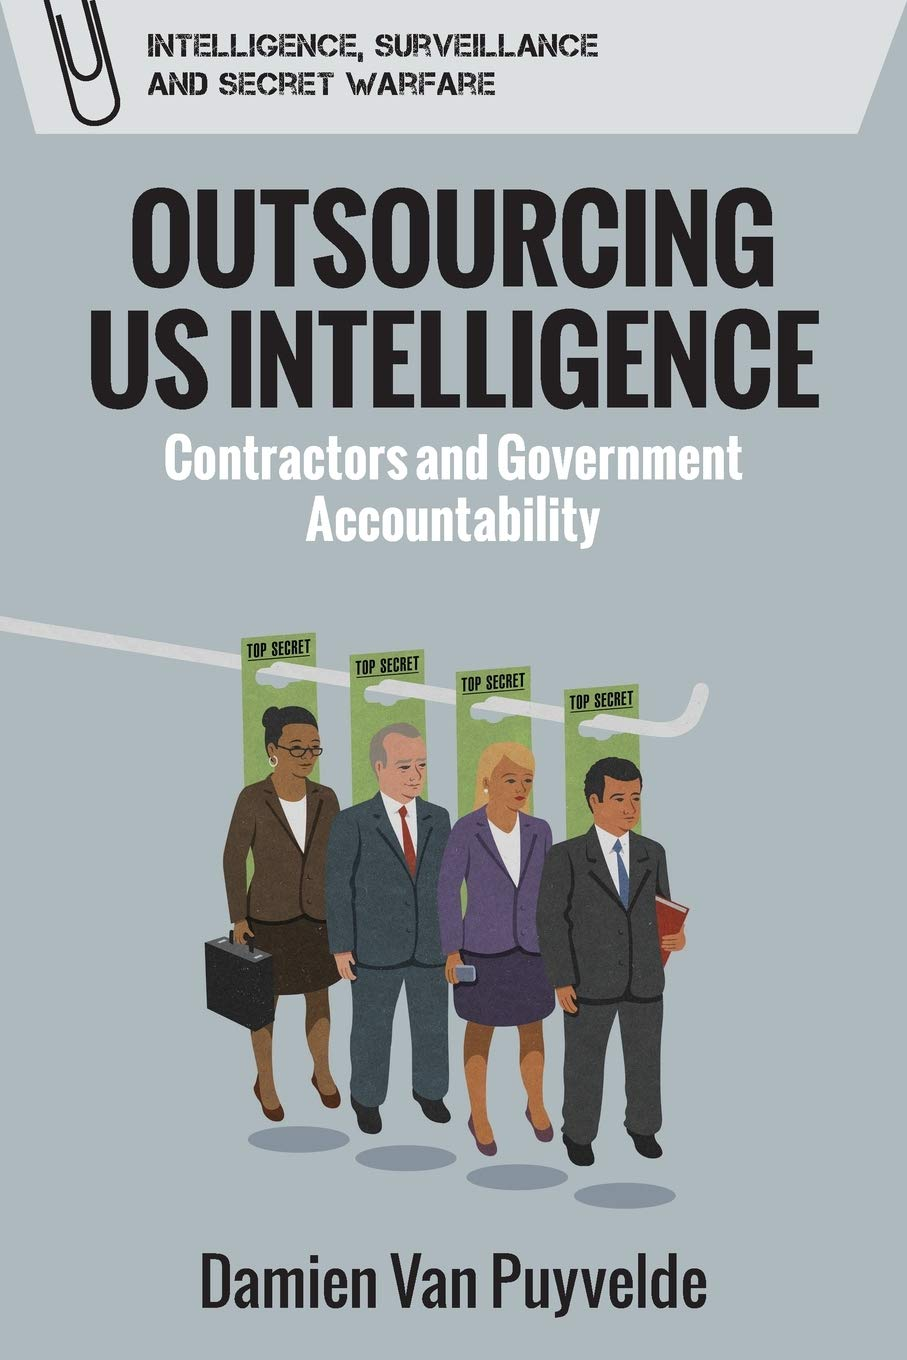 [#INTELLIGENCE] Livre: «Outsourcing Us Intelligence: Contractors and Government» by @DamienVP